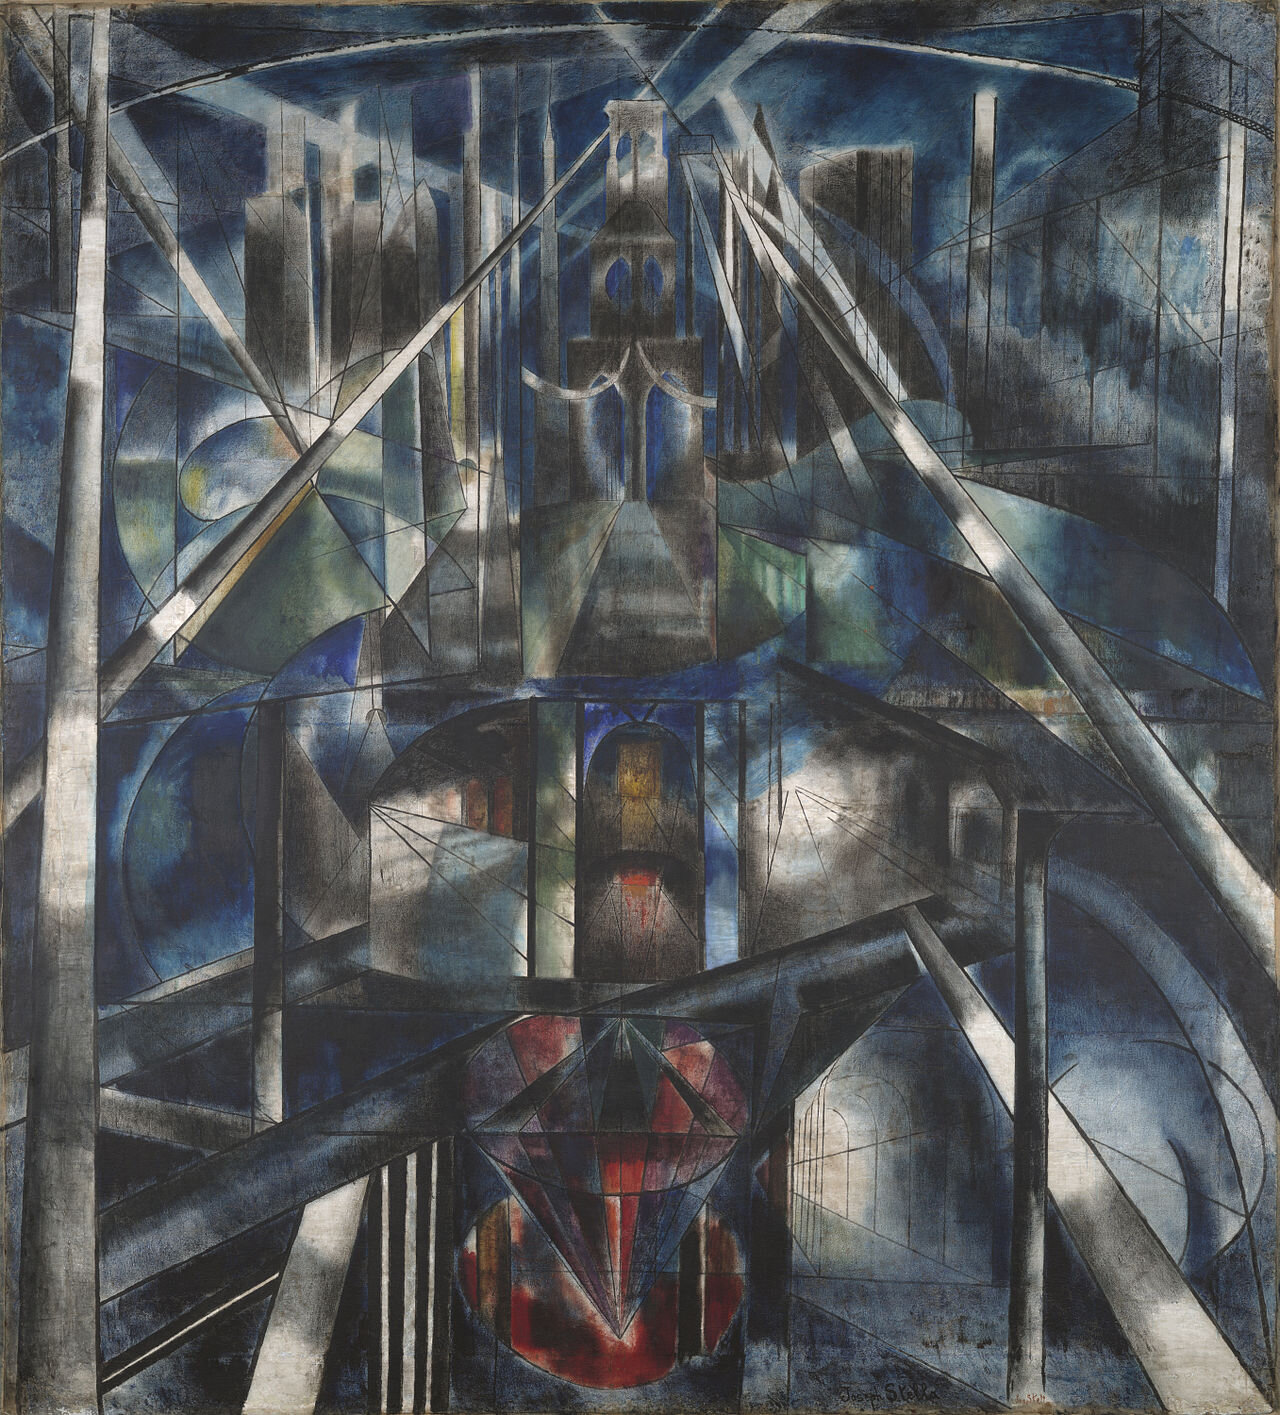 """Brooklyn Bridge,"" painted by Italian-American painter Joseph Stella in 1919, shows that Futurism lived on even after the official movement ended."